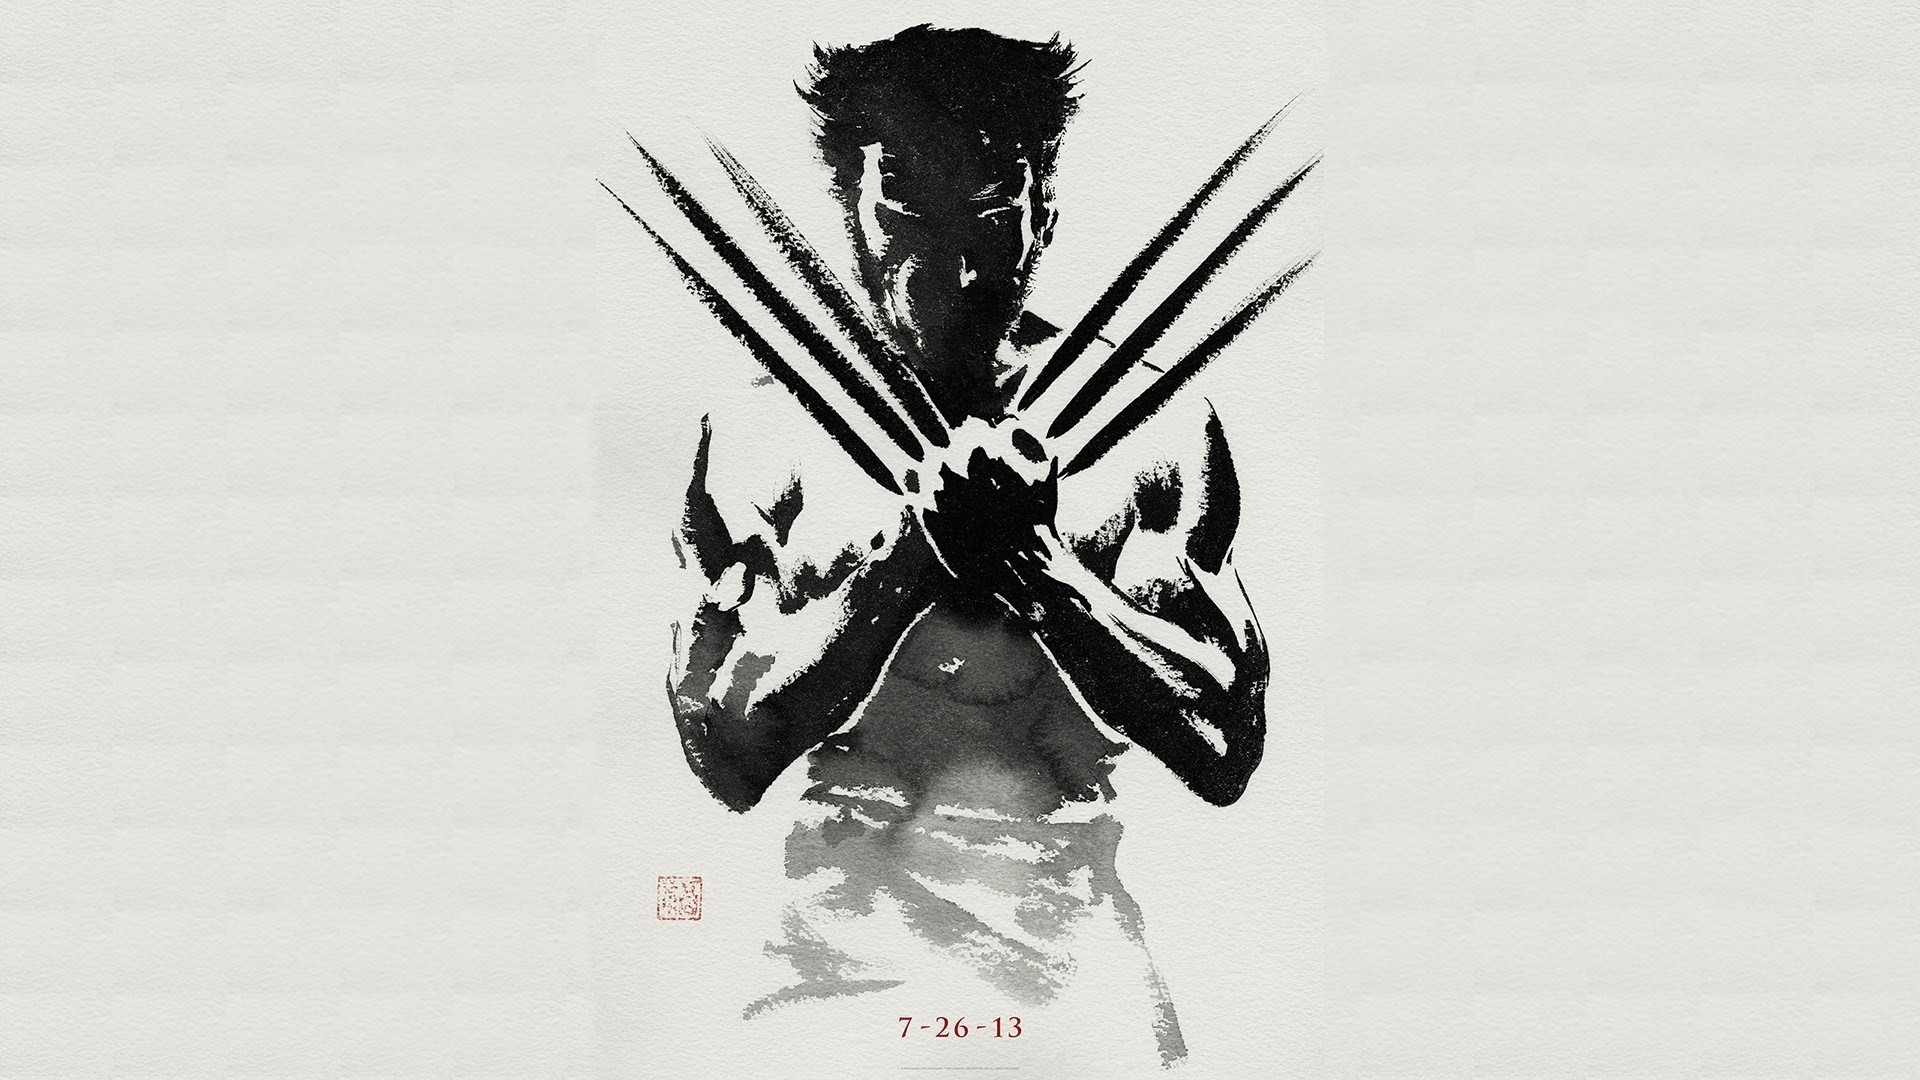 1920x1080 Find this Pin and more on Wallpapers For Desktop. Hugh Jackman XMen ...